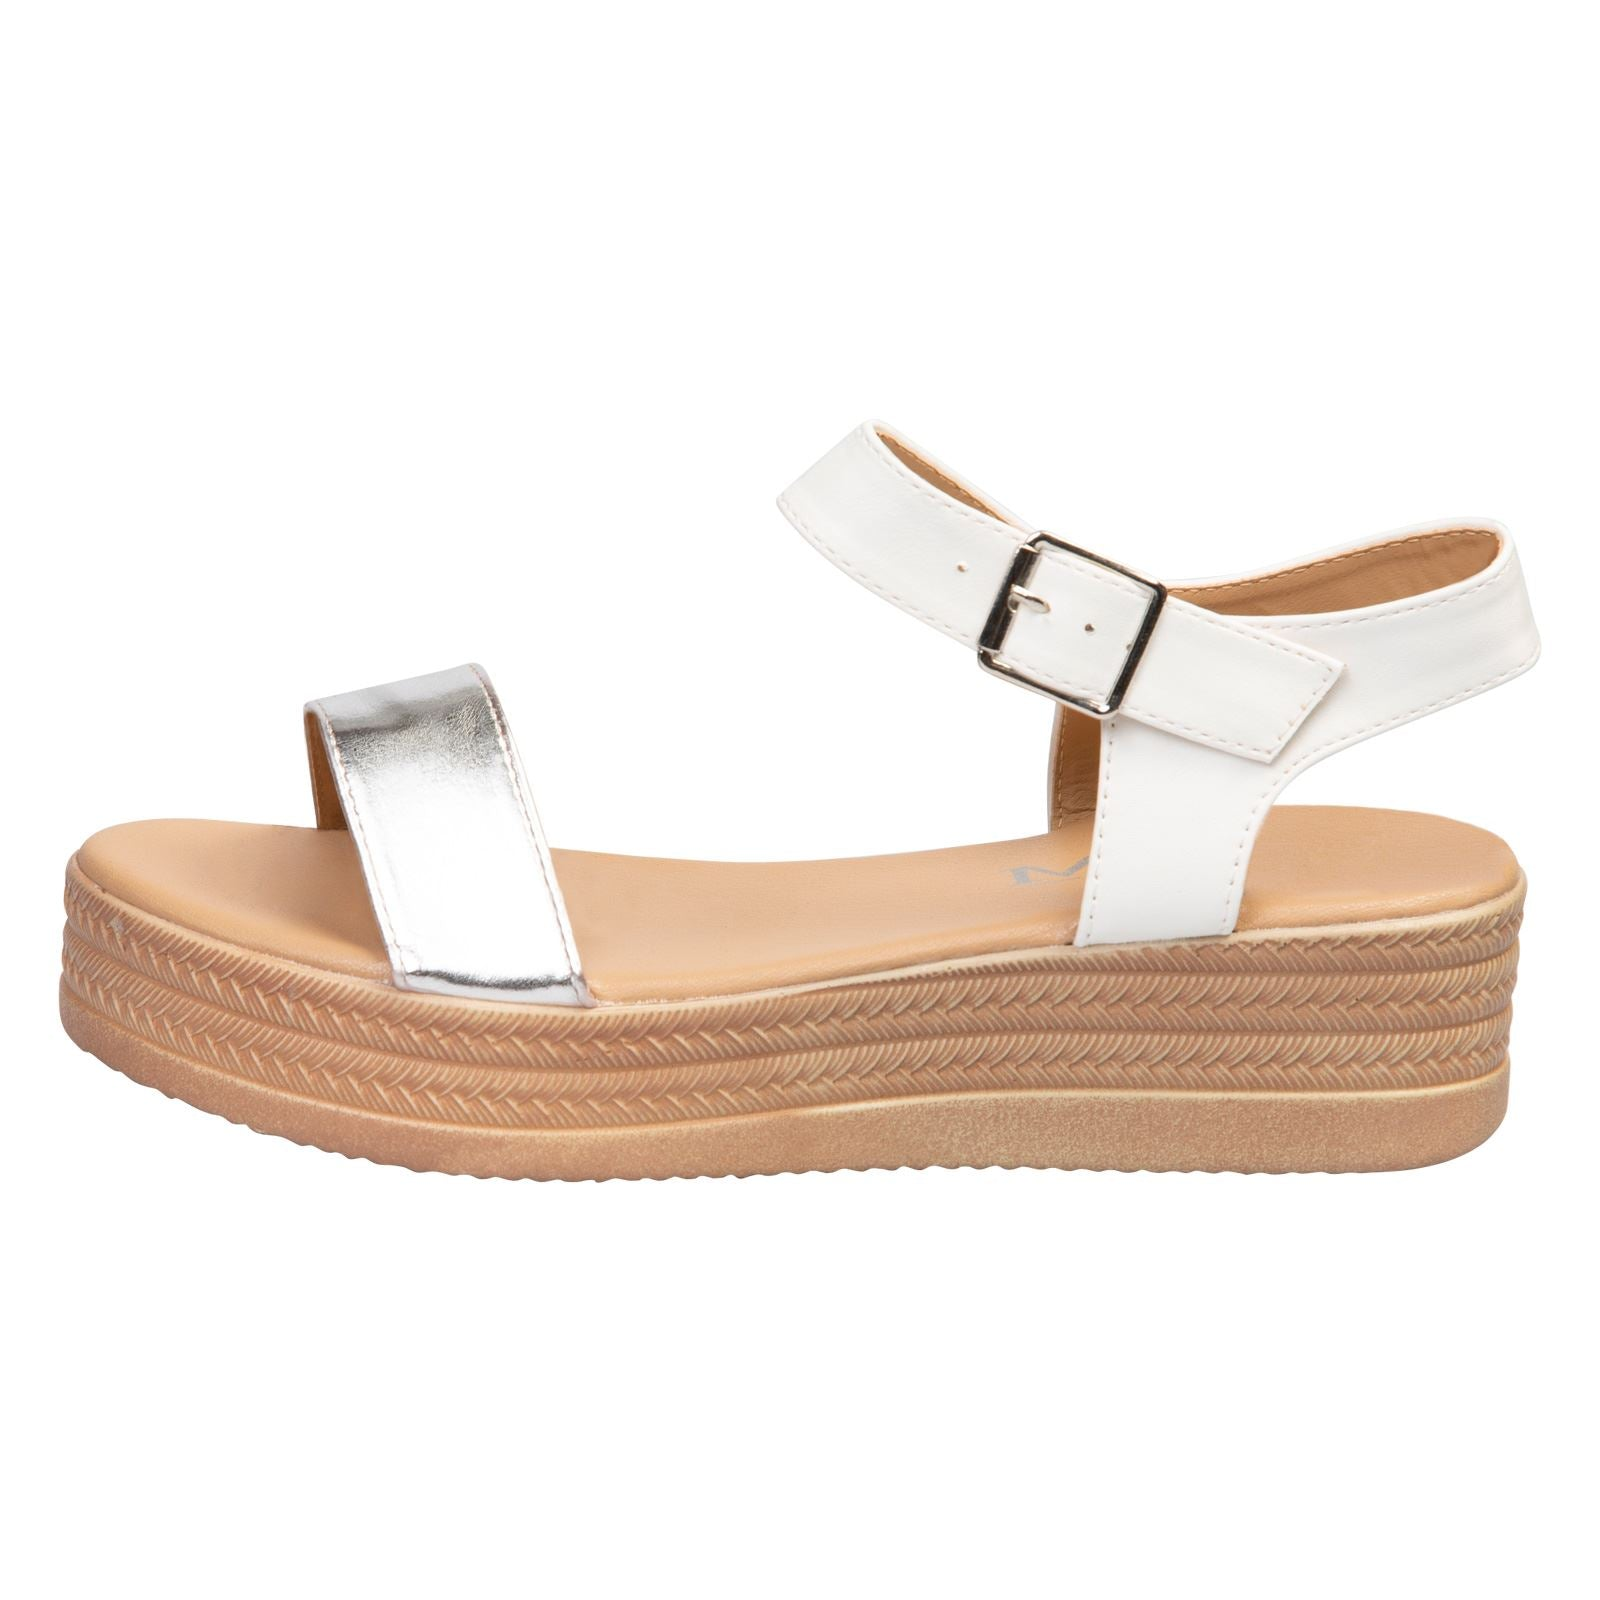 Eliana Flatform Sandals in White / Silver Faux Leather - Feet First Fashion